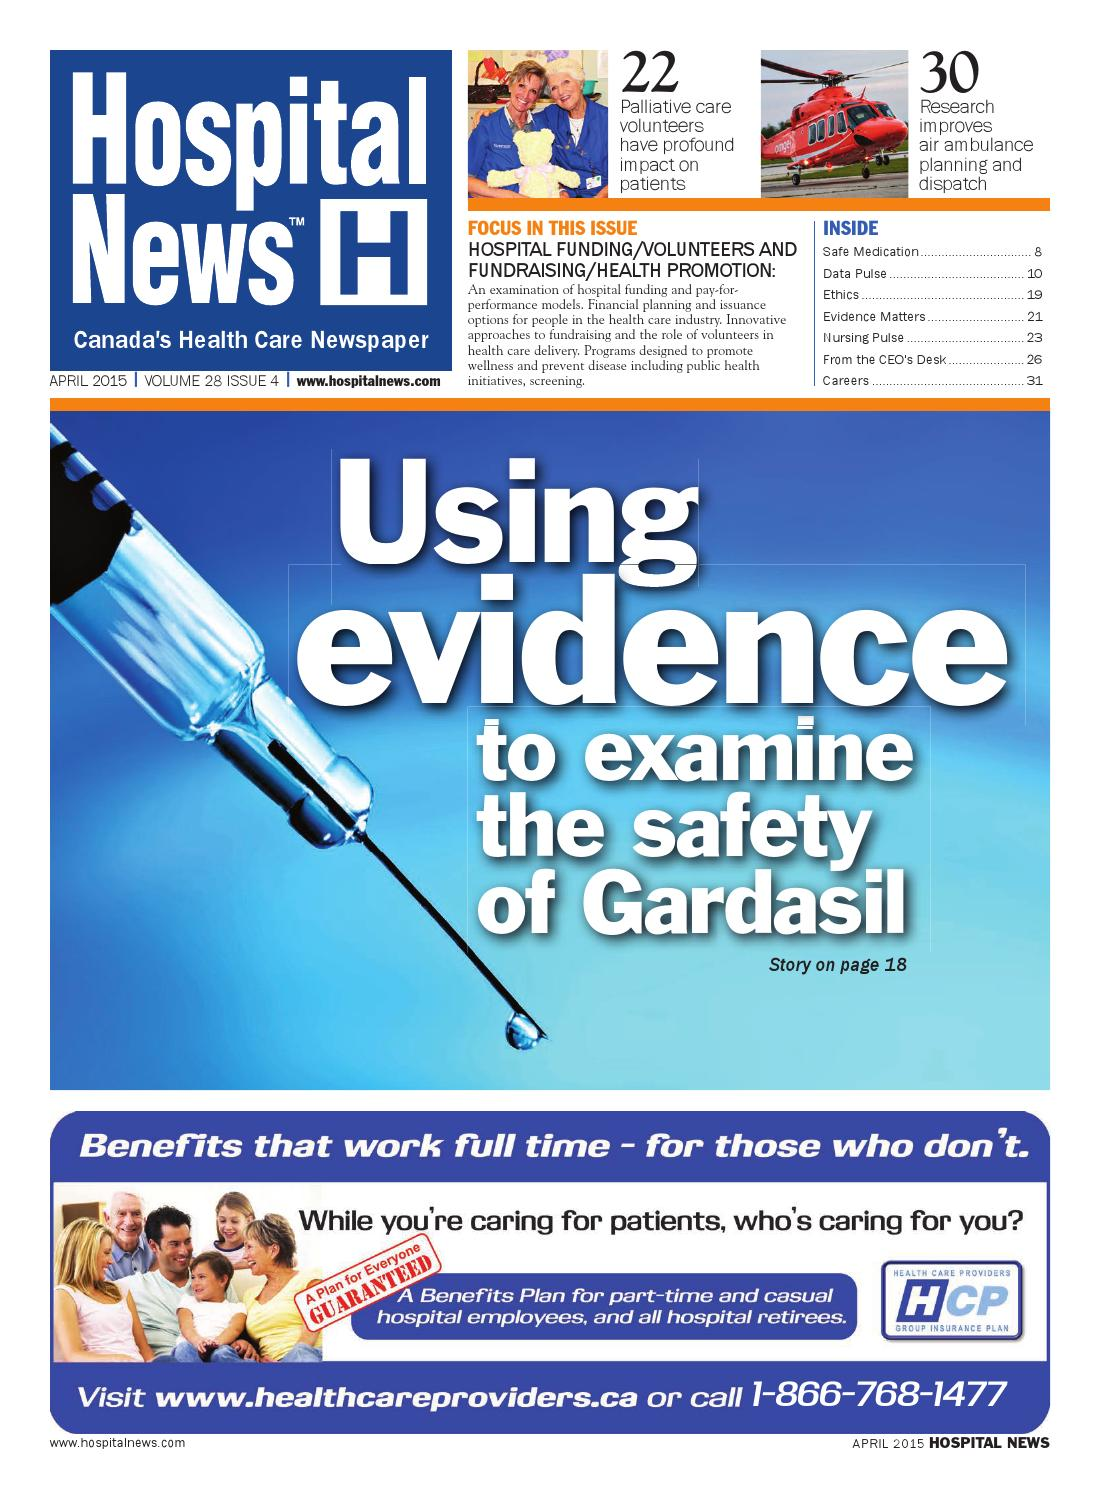 Hospital News 2015 April Edition by Hospital News - issuu